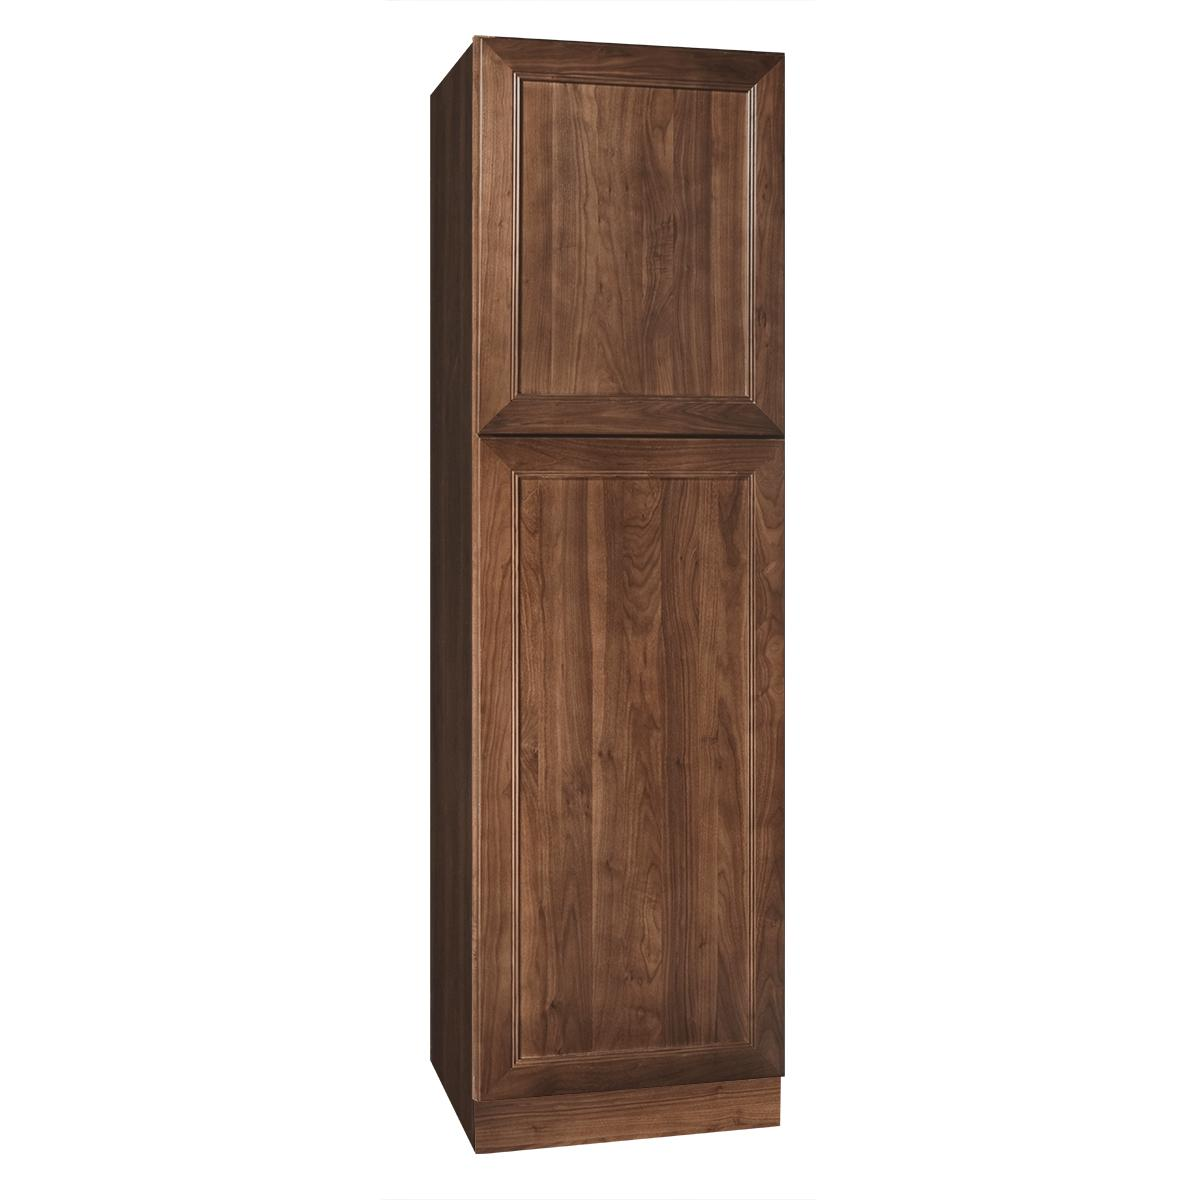 San Remo Series 18x84 Inch Tall Linen Cabinet